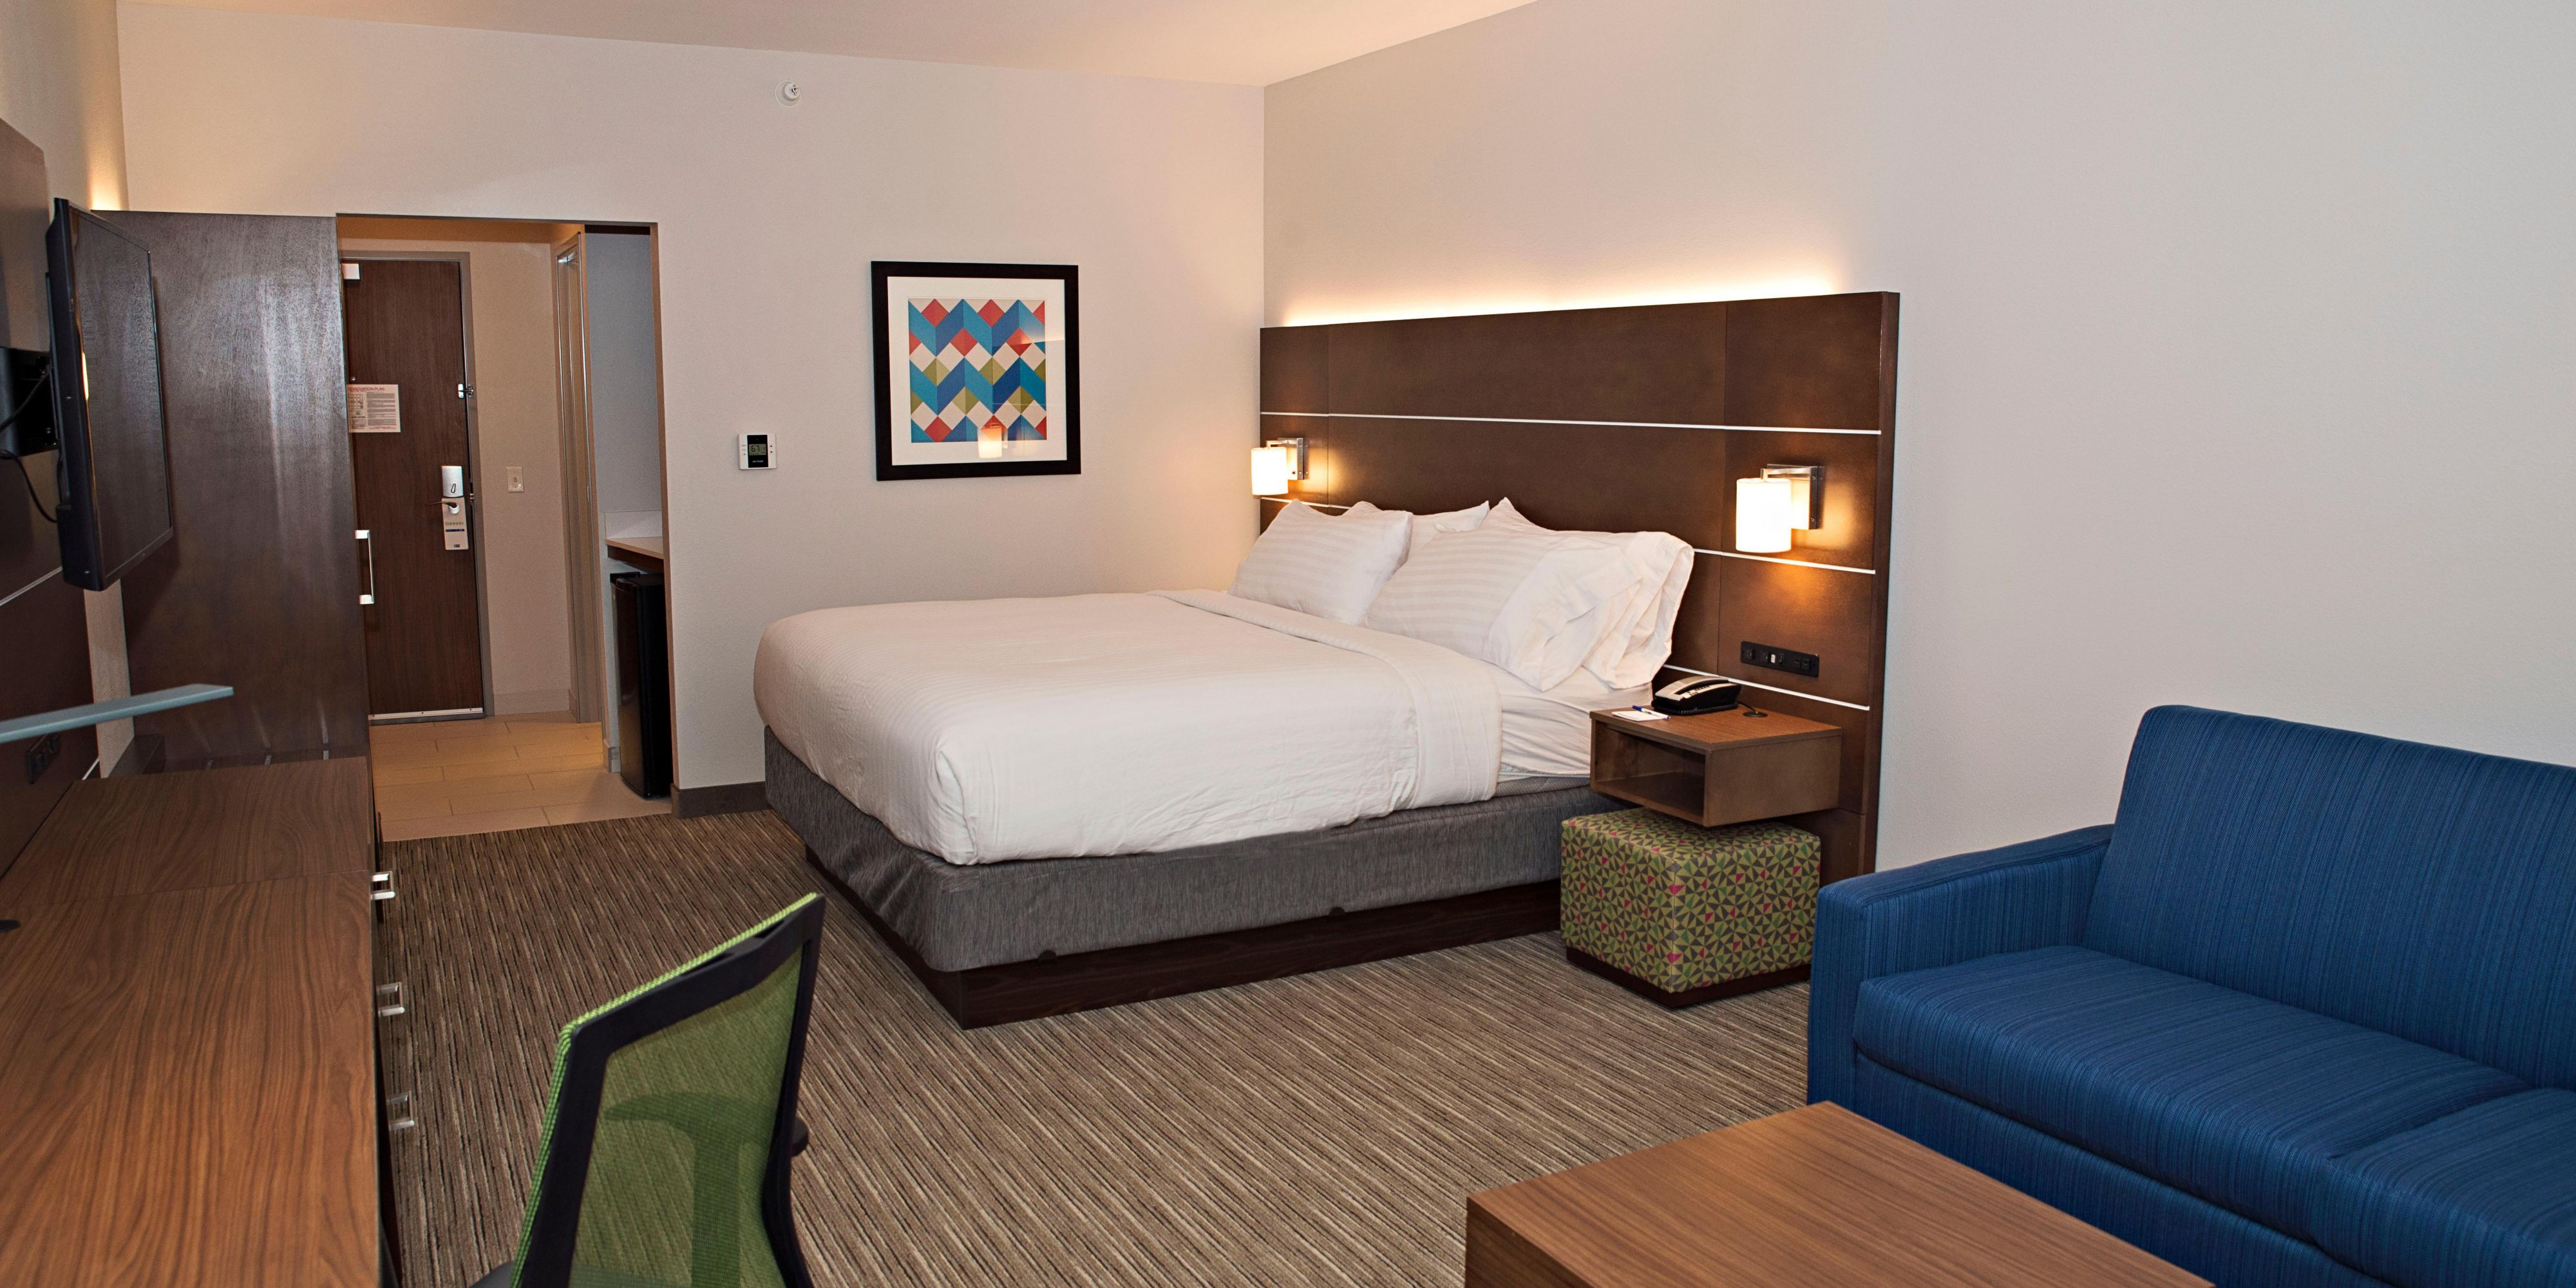 Holiday Inn Express And Suites Rantoul 4955671163 2x1